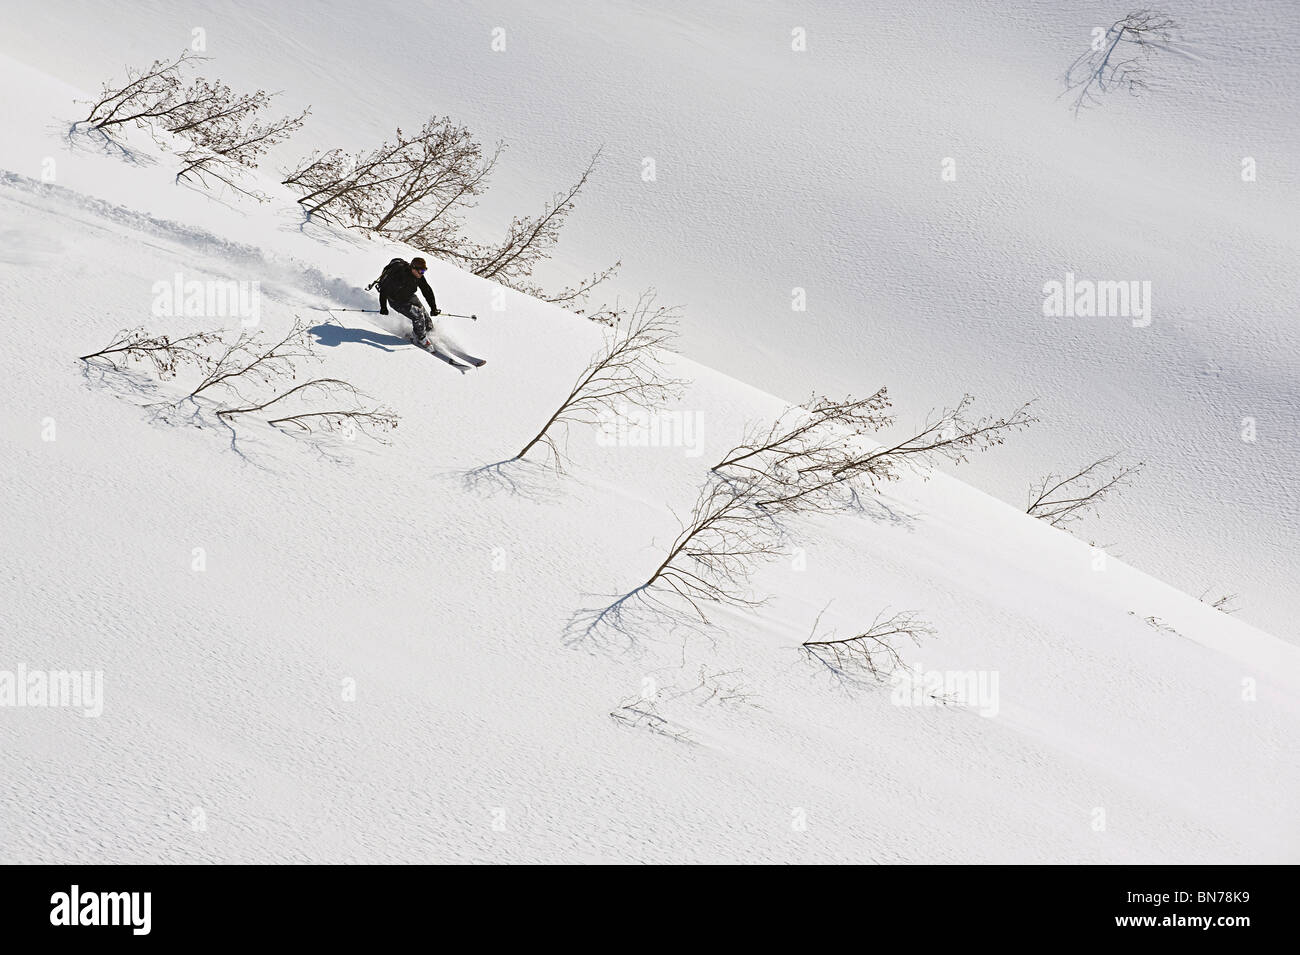 A backcountry skier starts a descent between alders in Turnagain Pass, Alaska - Stock Image